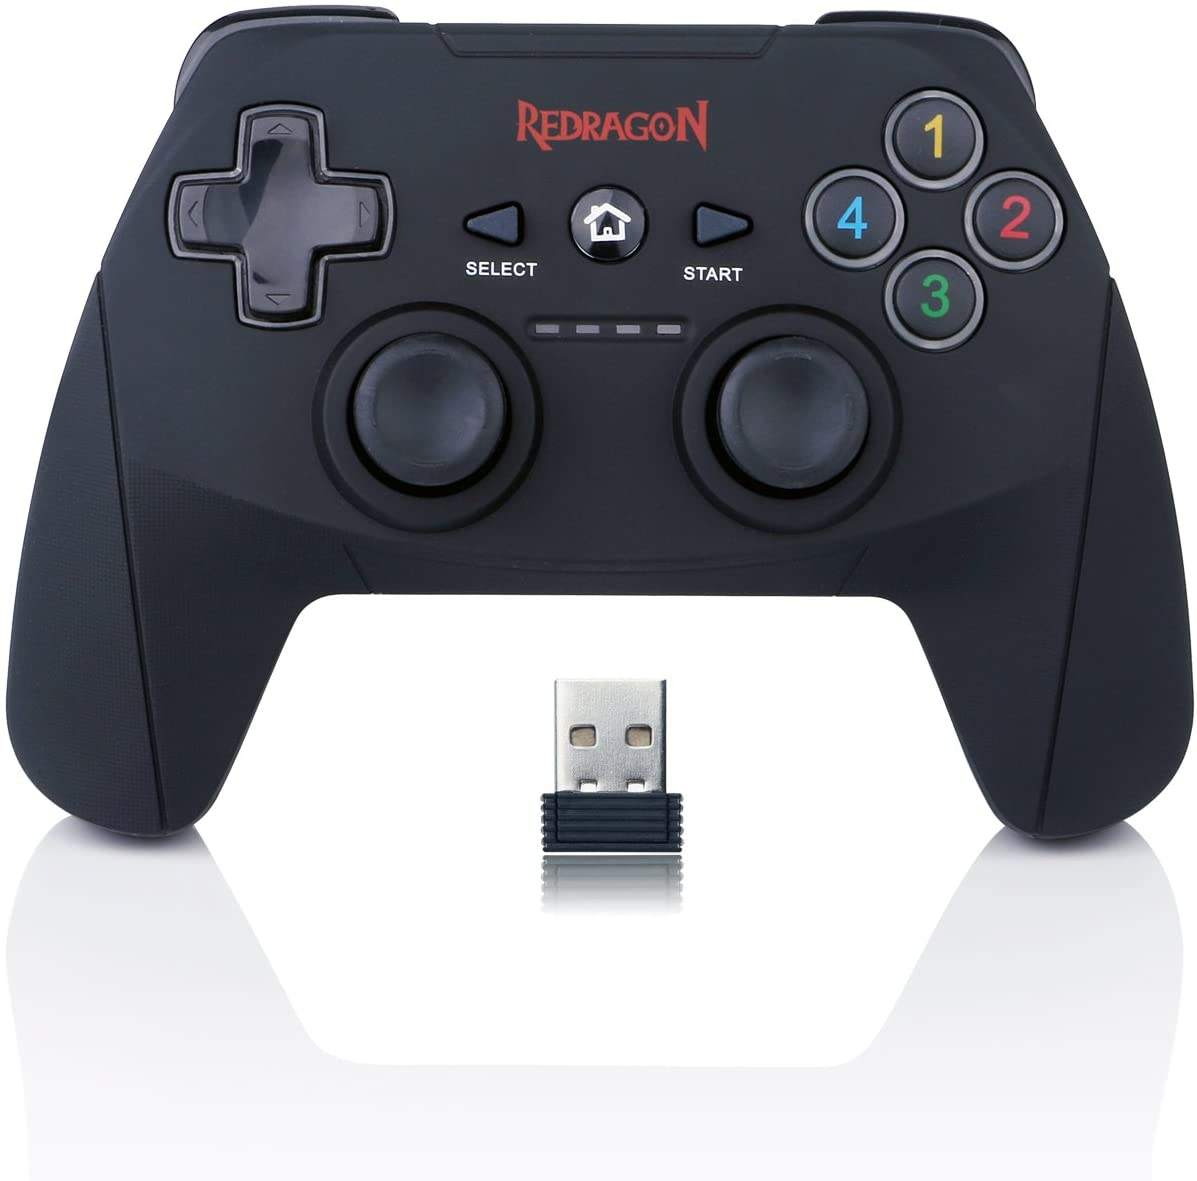 Redragon G808 PC Game Controller Gamepad, Joystick with Dual Vibration, Harrow, for Windows PC, PS3, Playstation, Android, Xbox